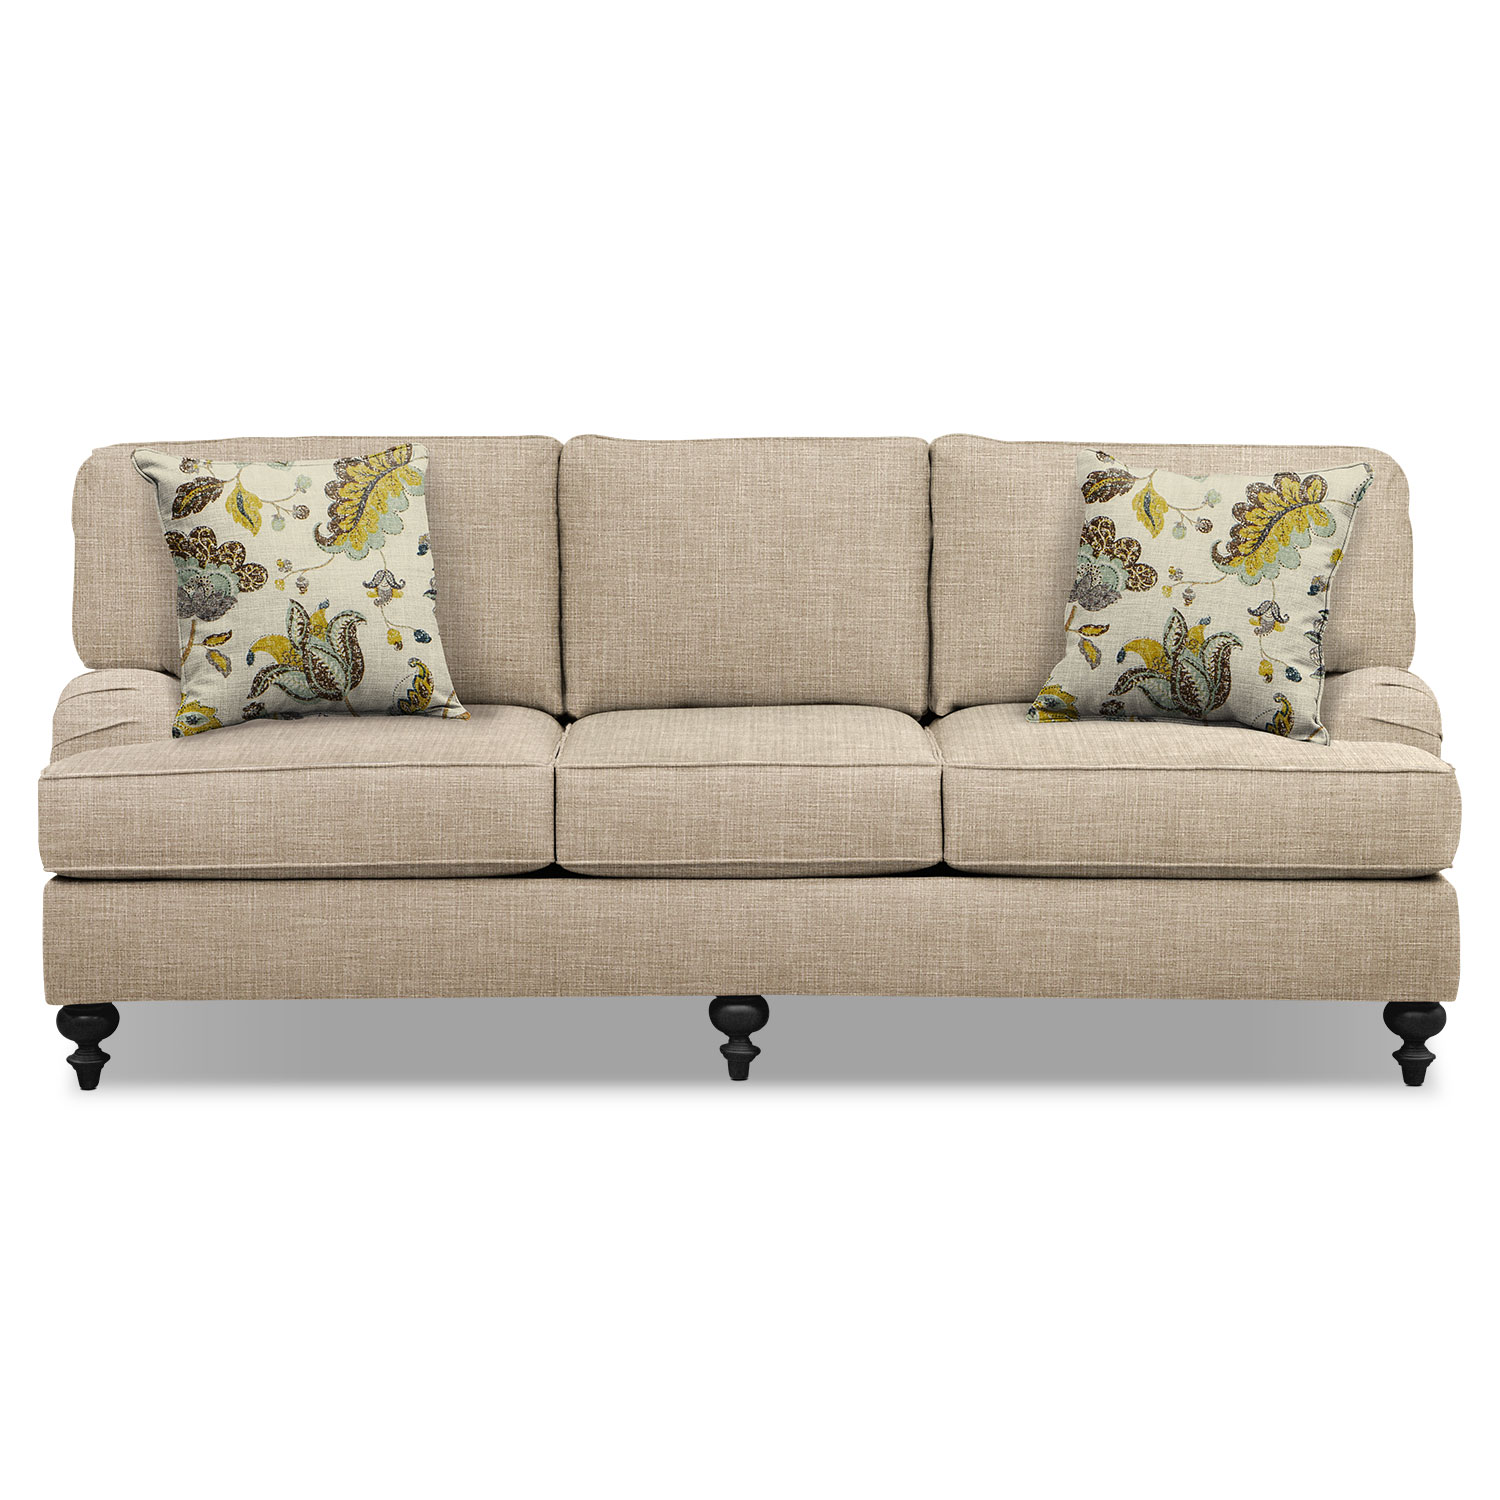 "Avery Taupe 86"" Memory Foam Sleeper Sofa 62"" Sofa and Accent"